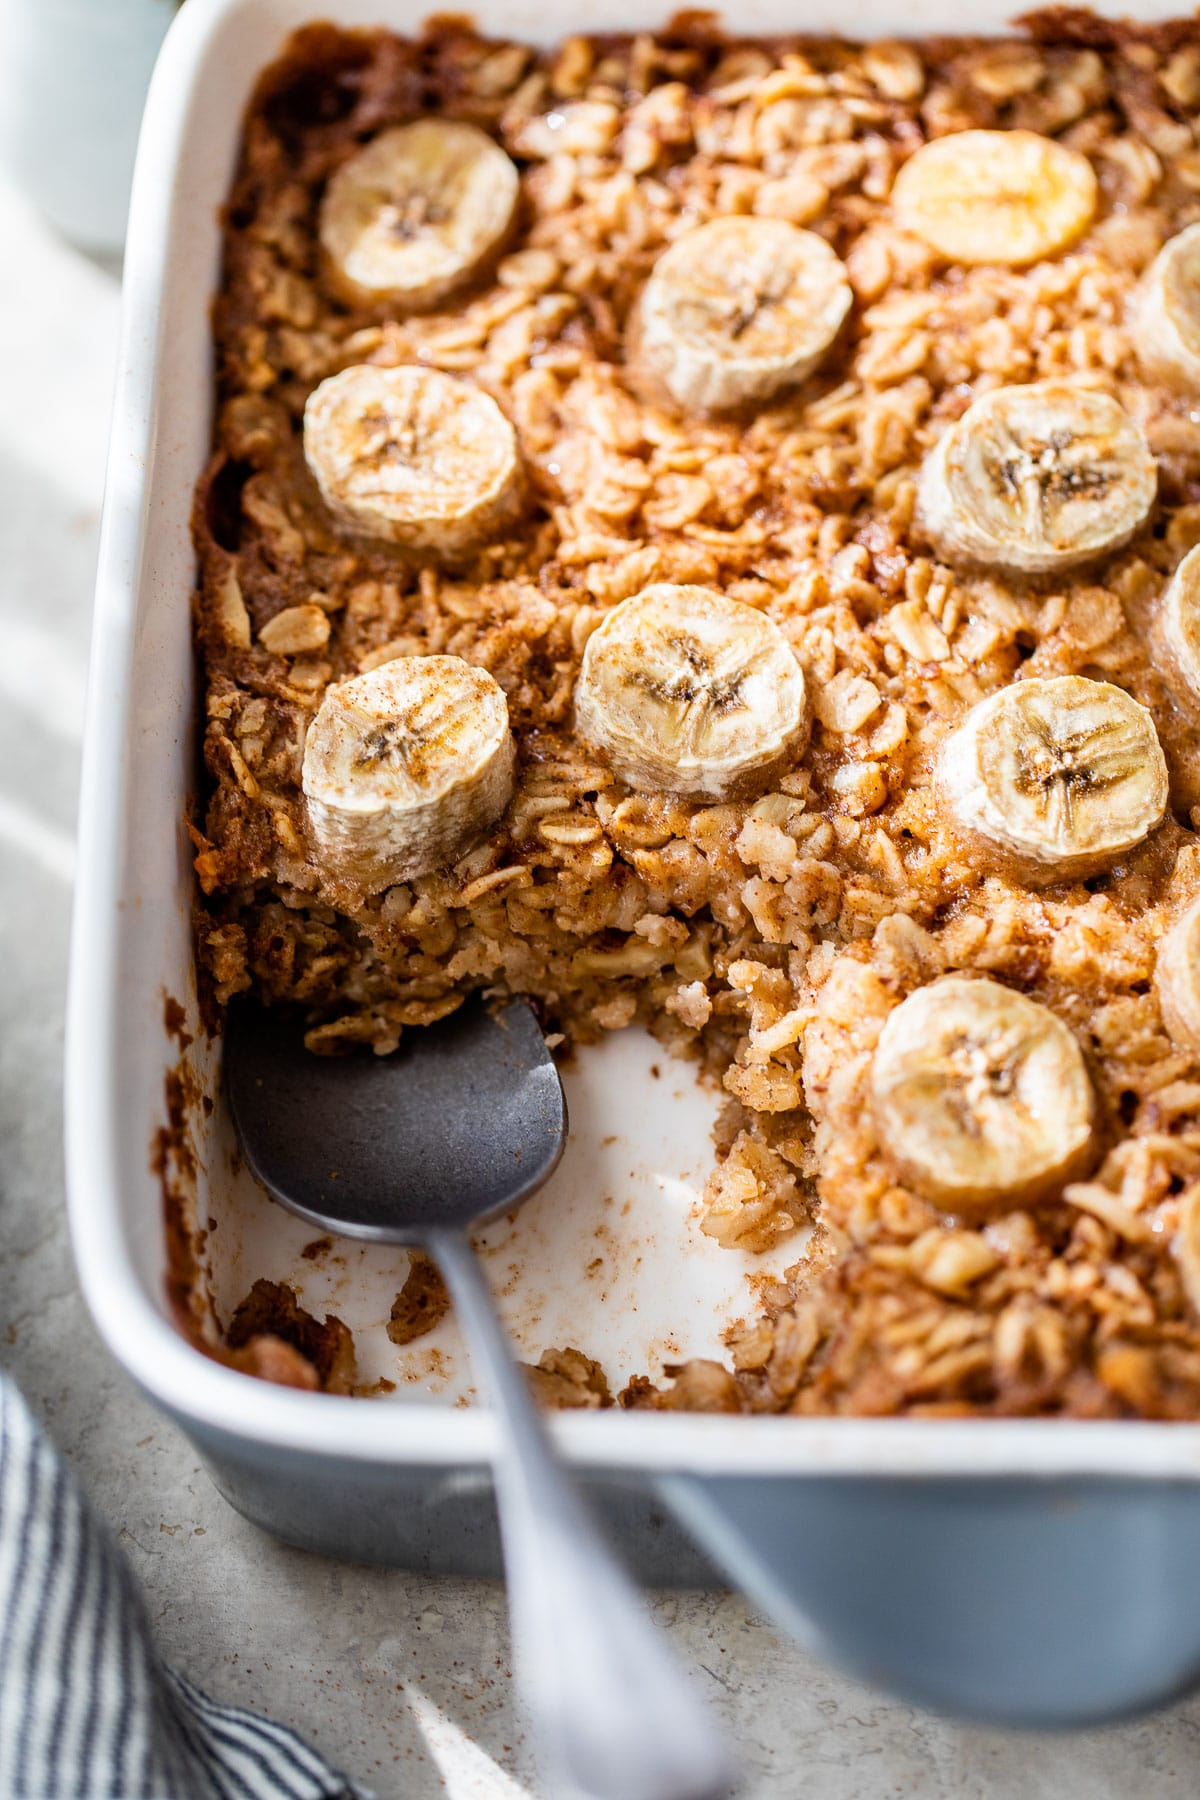 oatmeal in a baking dish topped with sliced banana